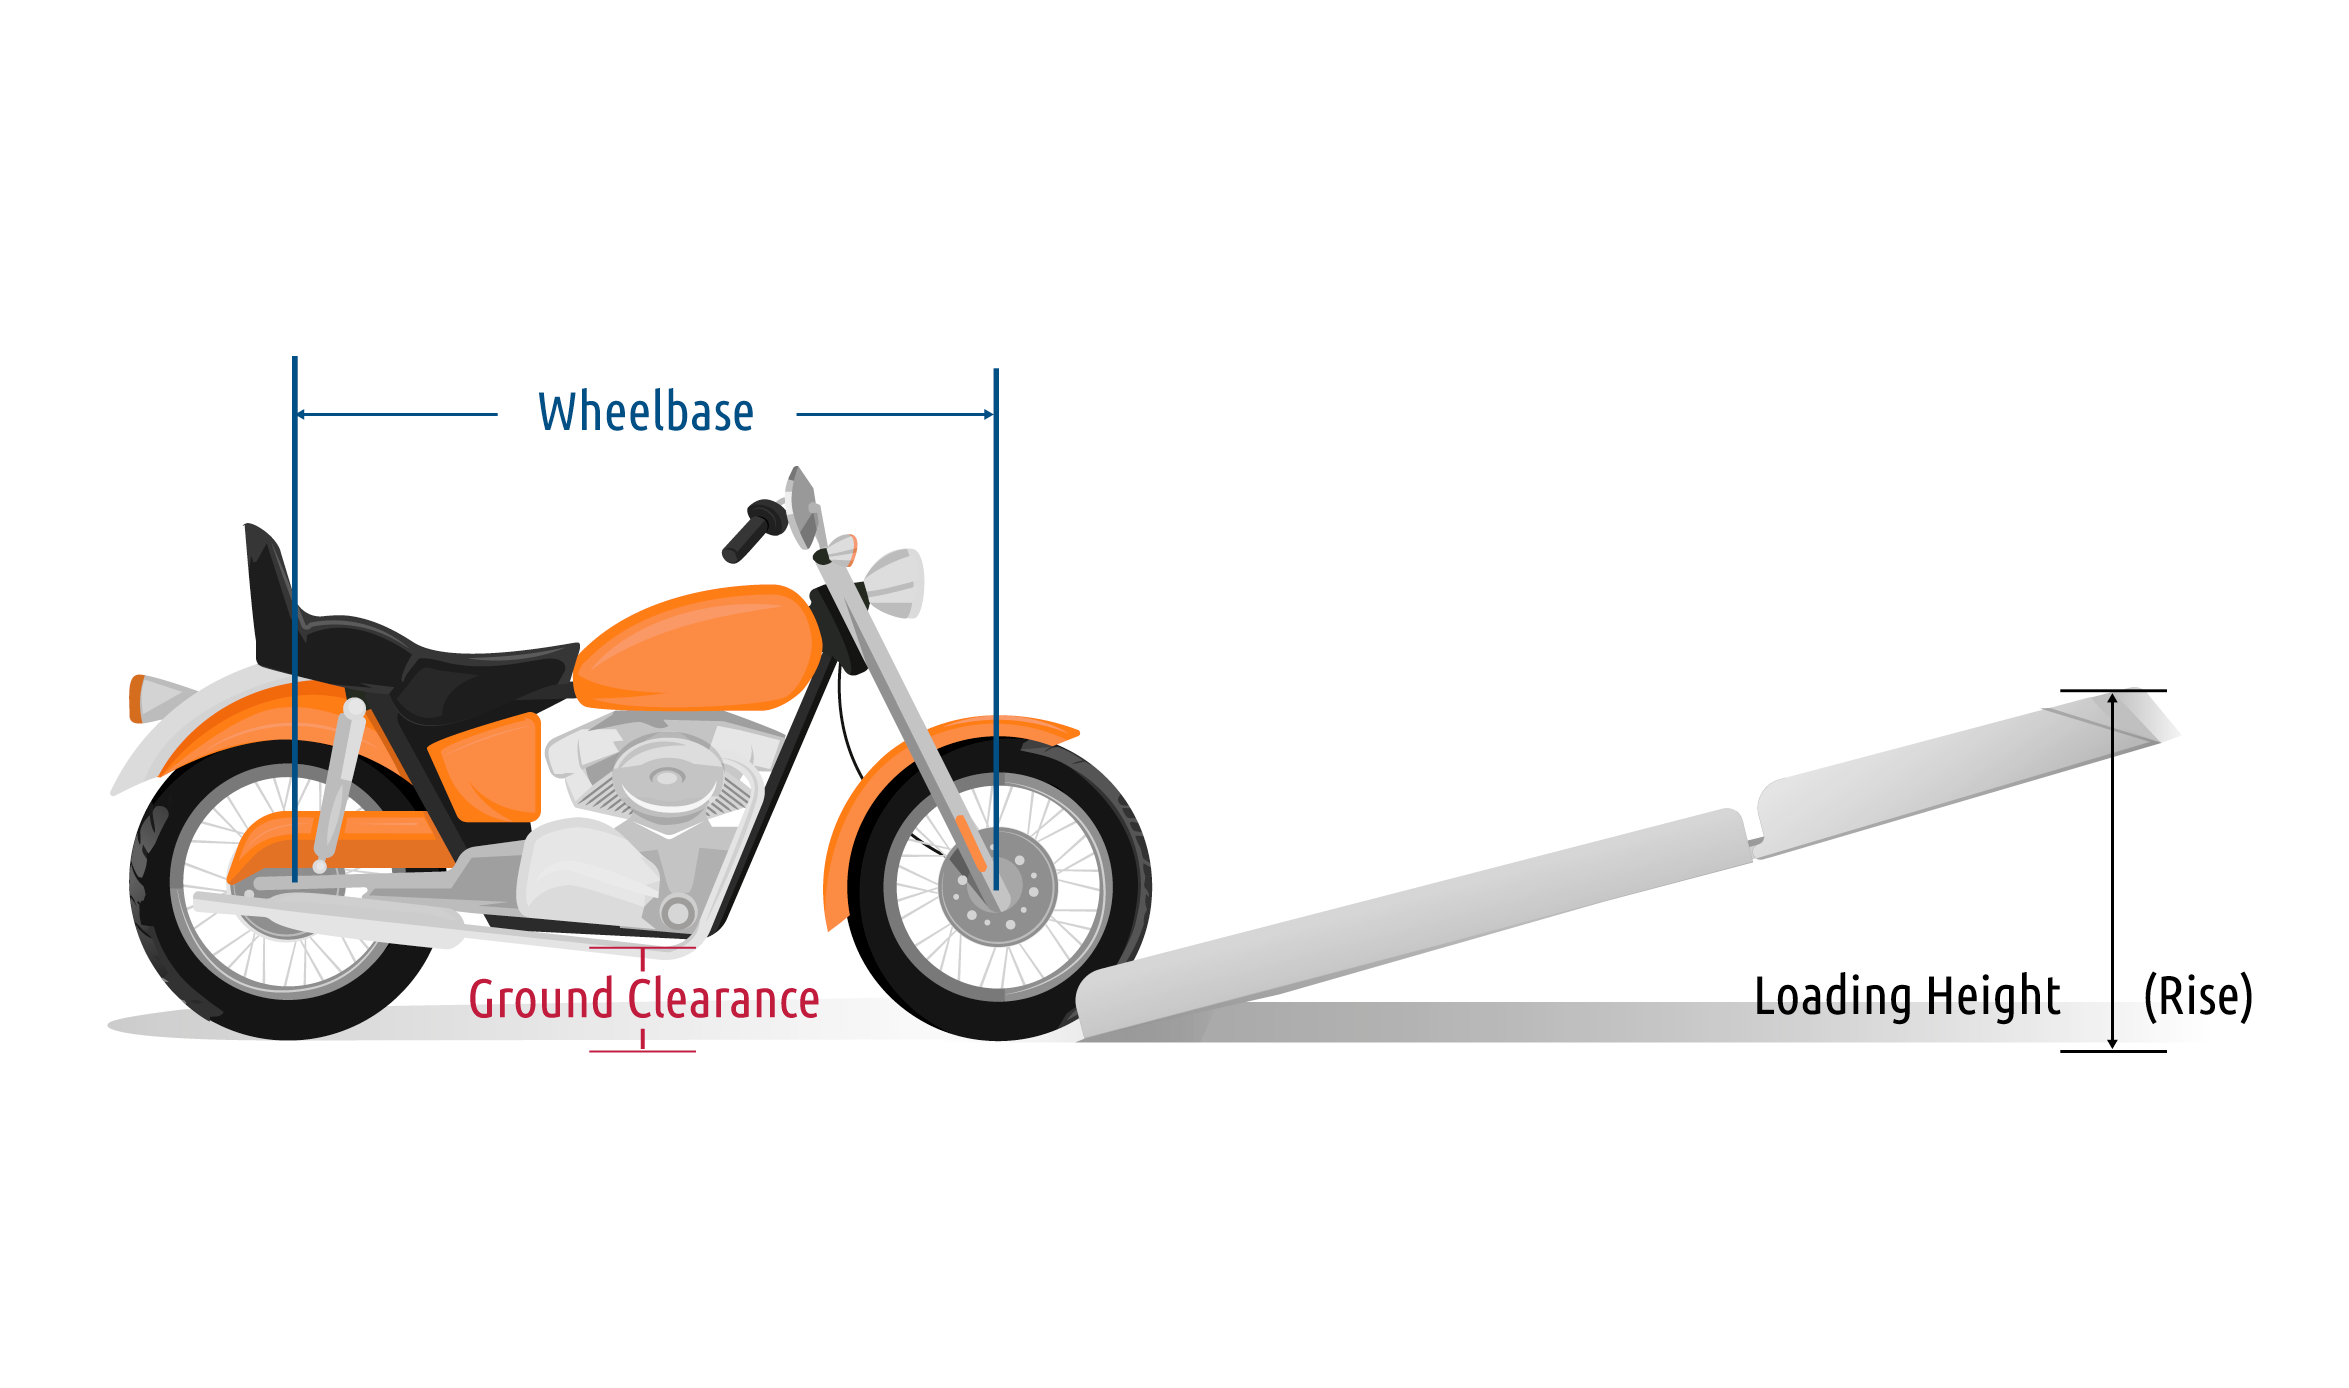 motorcycle ramp distance, length, and vertical rise